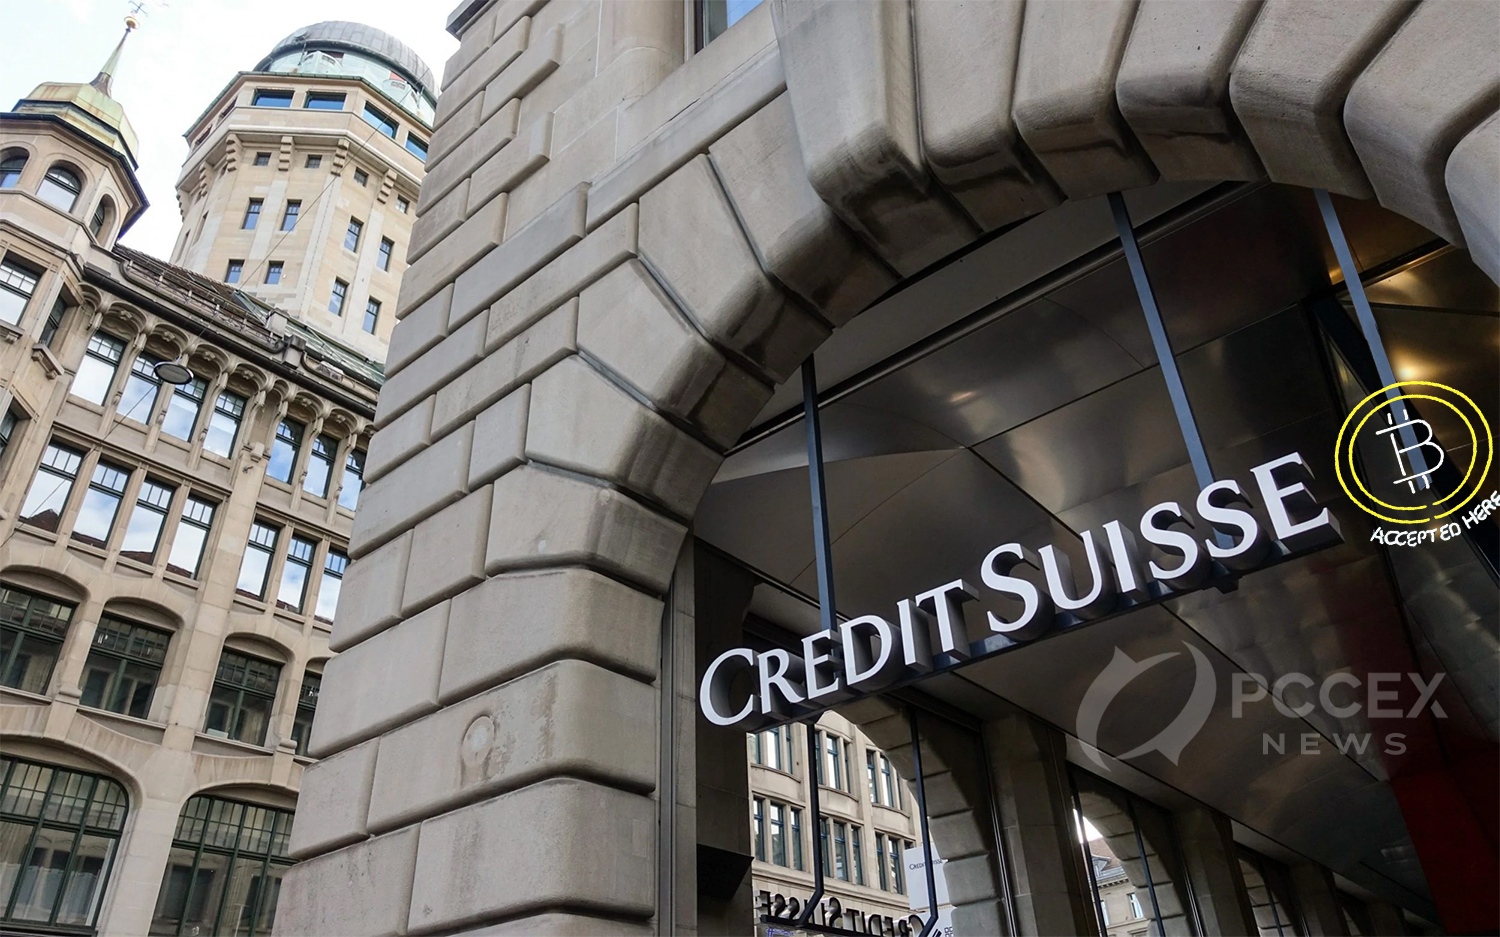 Bank giant Credit Suisse expresses support for Bitcoin